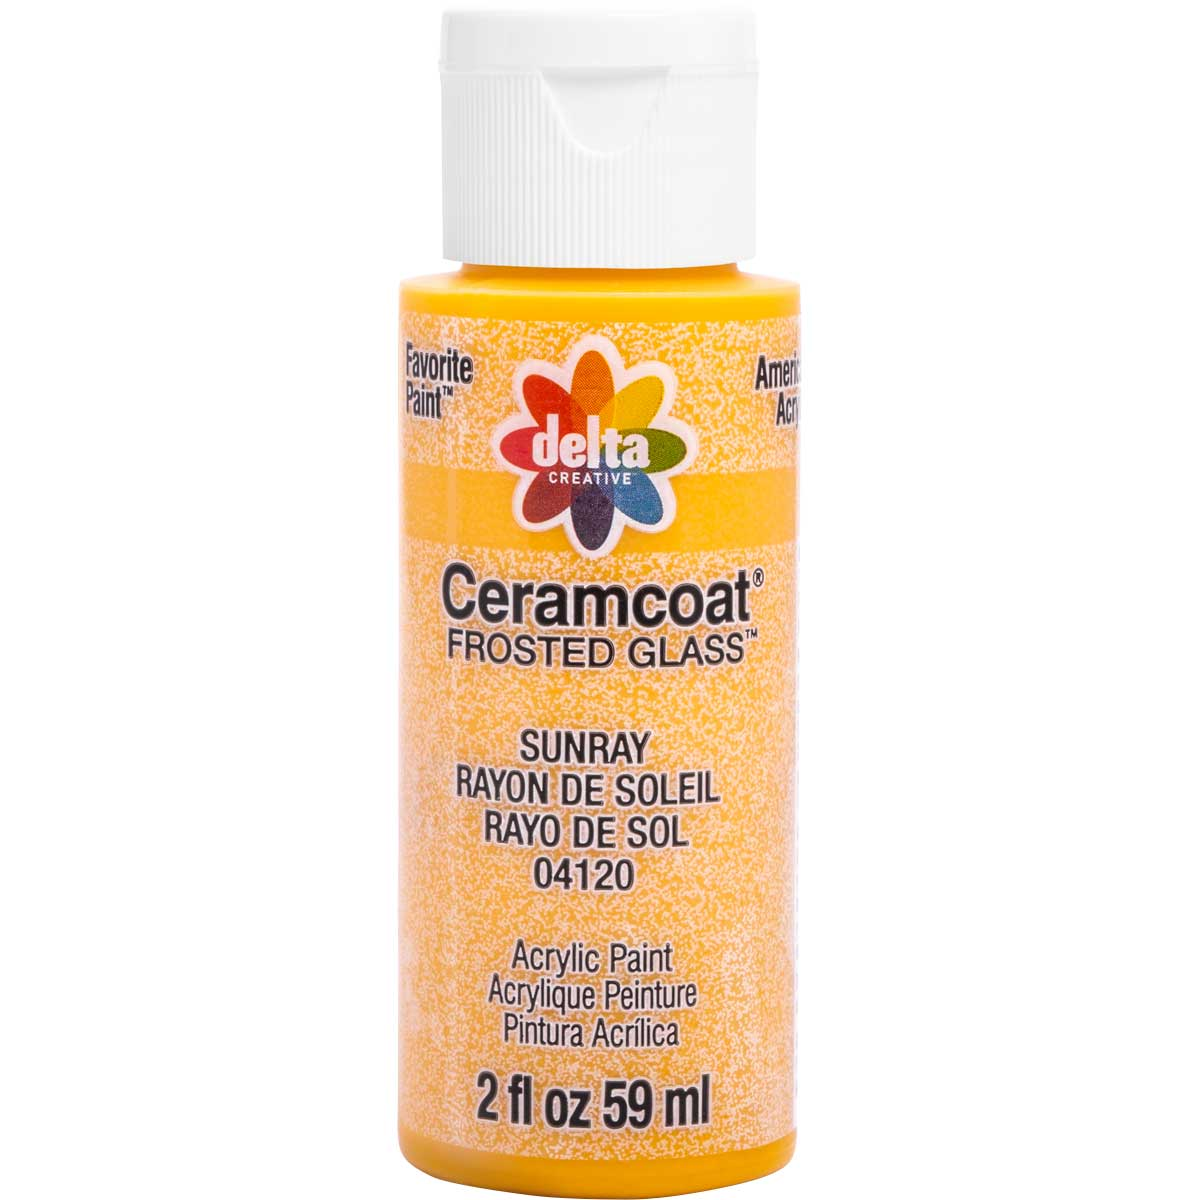 Delta Ceramcoat ® Frosted Glass Paint - Sunray, 2 oz.